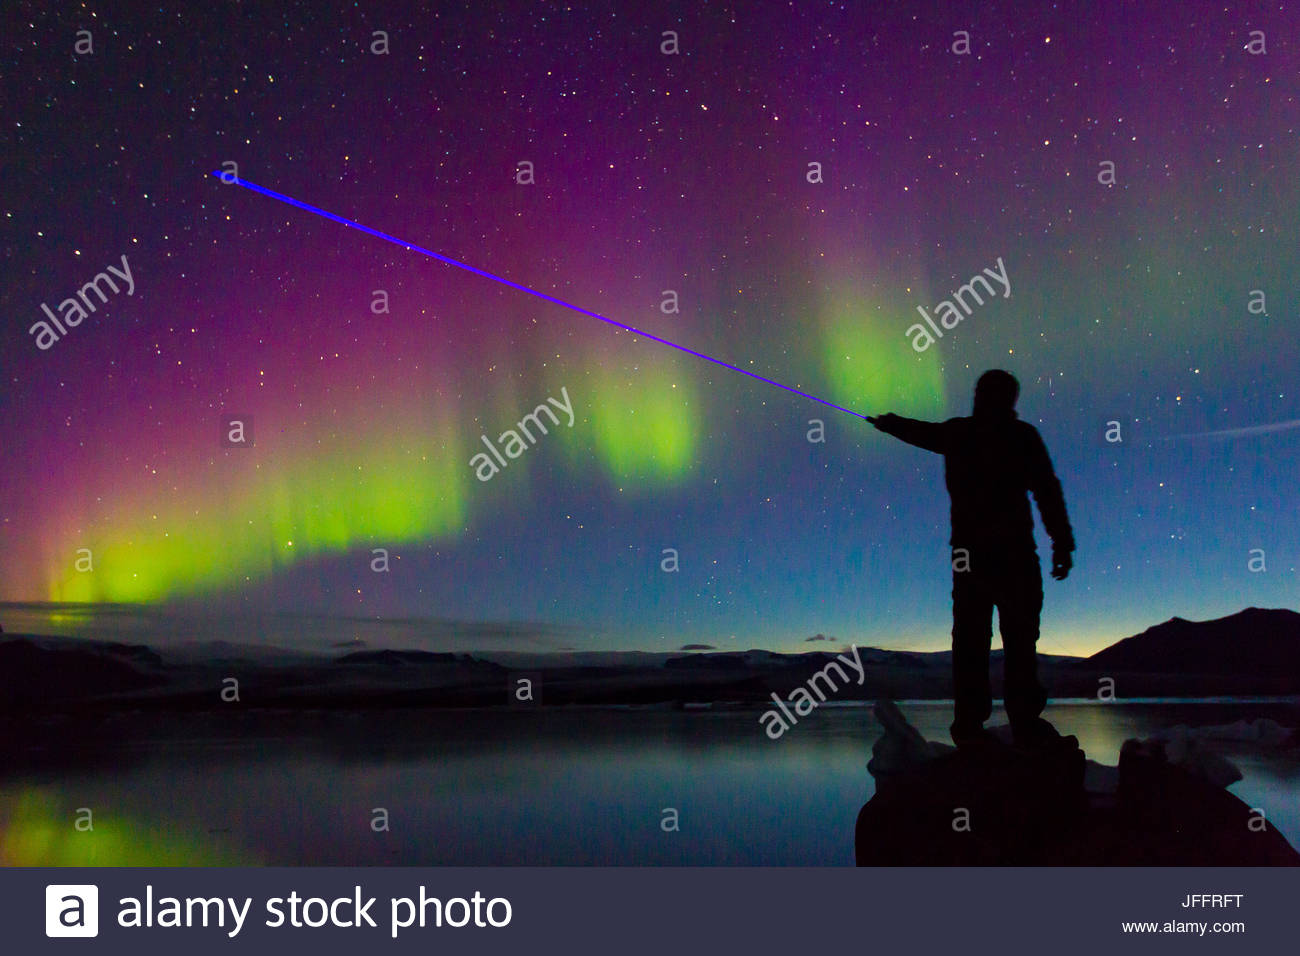 A man shining a blue laser at the Northern Lights during a geomagnetic solar storm so intense the lights reflecting - Stock Image